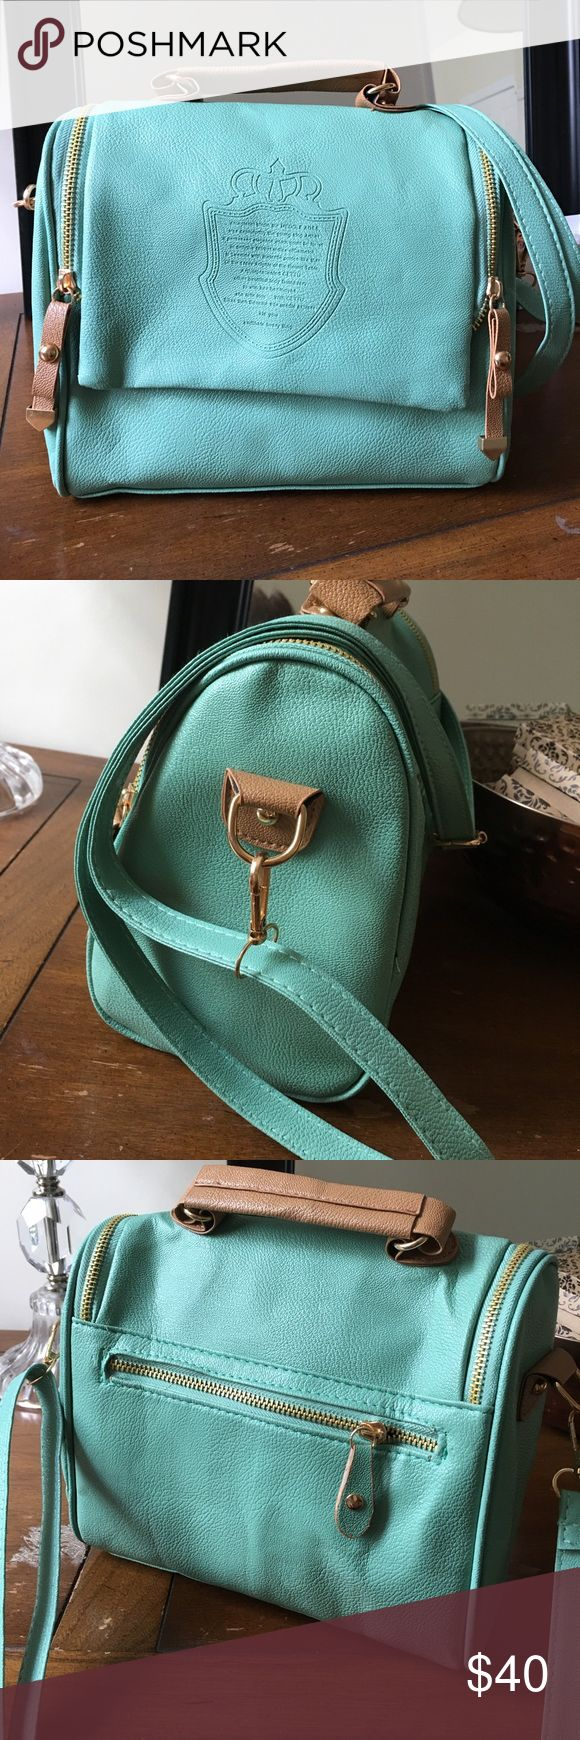 Brand new faux leather mint bag Gorgeous faux leather mint bag with crest design on front and gold tone detailing throughout. Can be used as a handbag, shoulder bag or crossbody (removable and adjustable strap). Bags Shoulder Bags